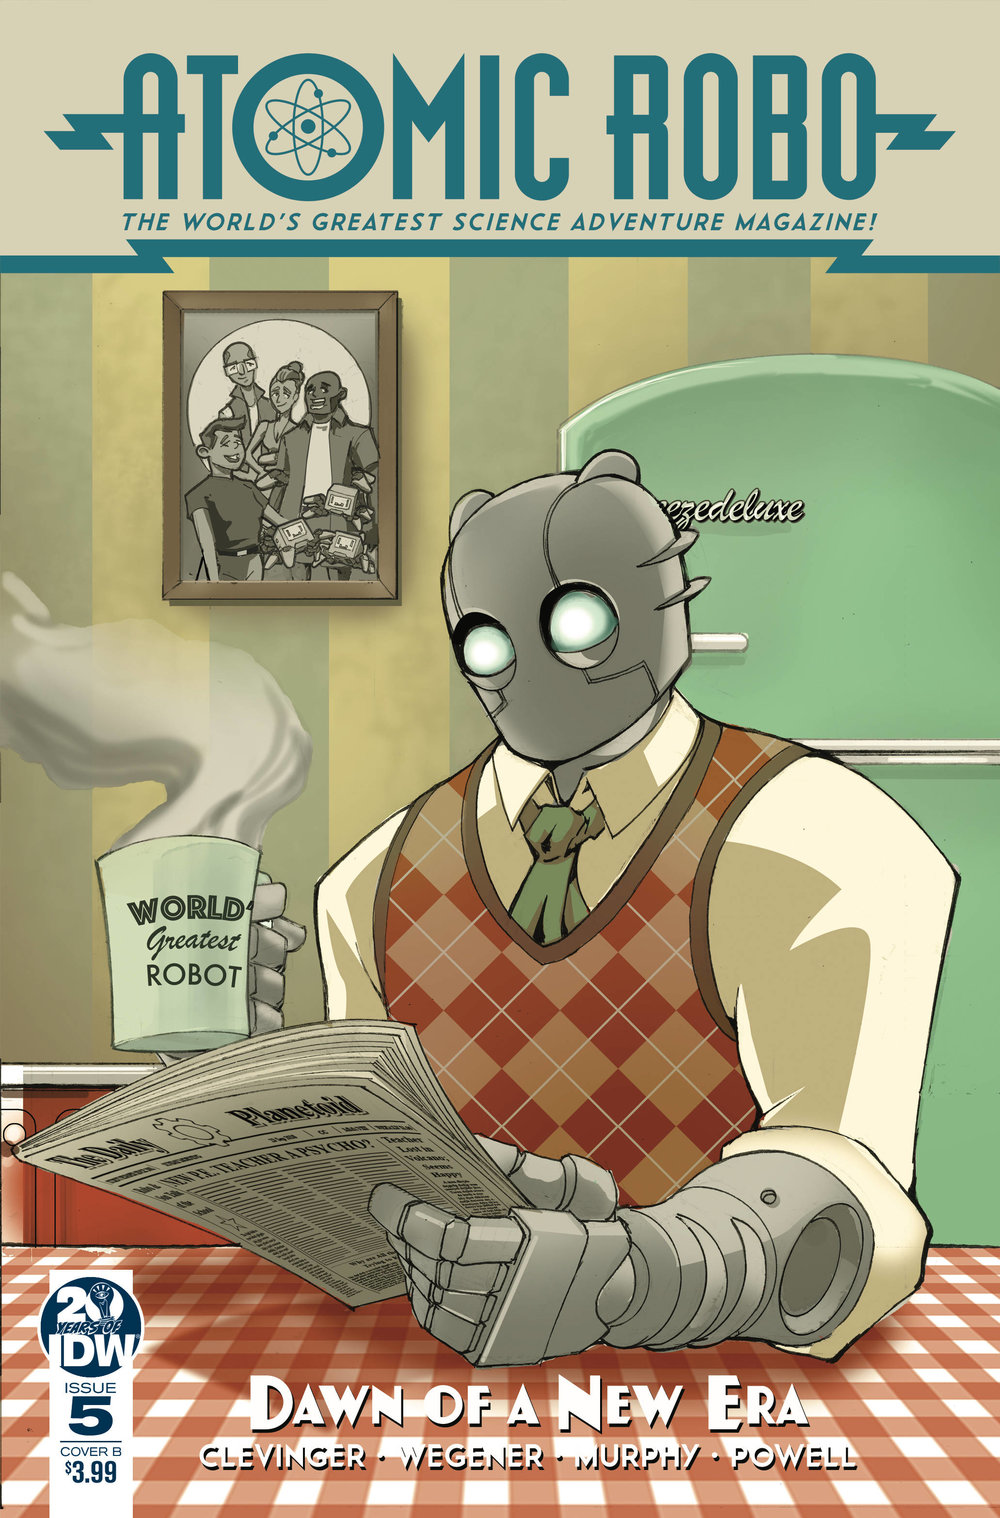 ATOMIC ROBO & DAWN OF NEW ERA 5 of 5 CVR B GRIFFITH.jpg